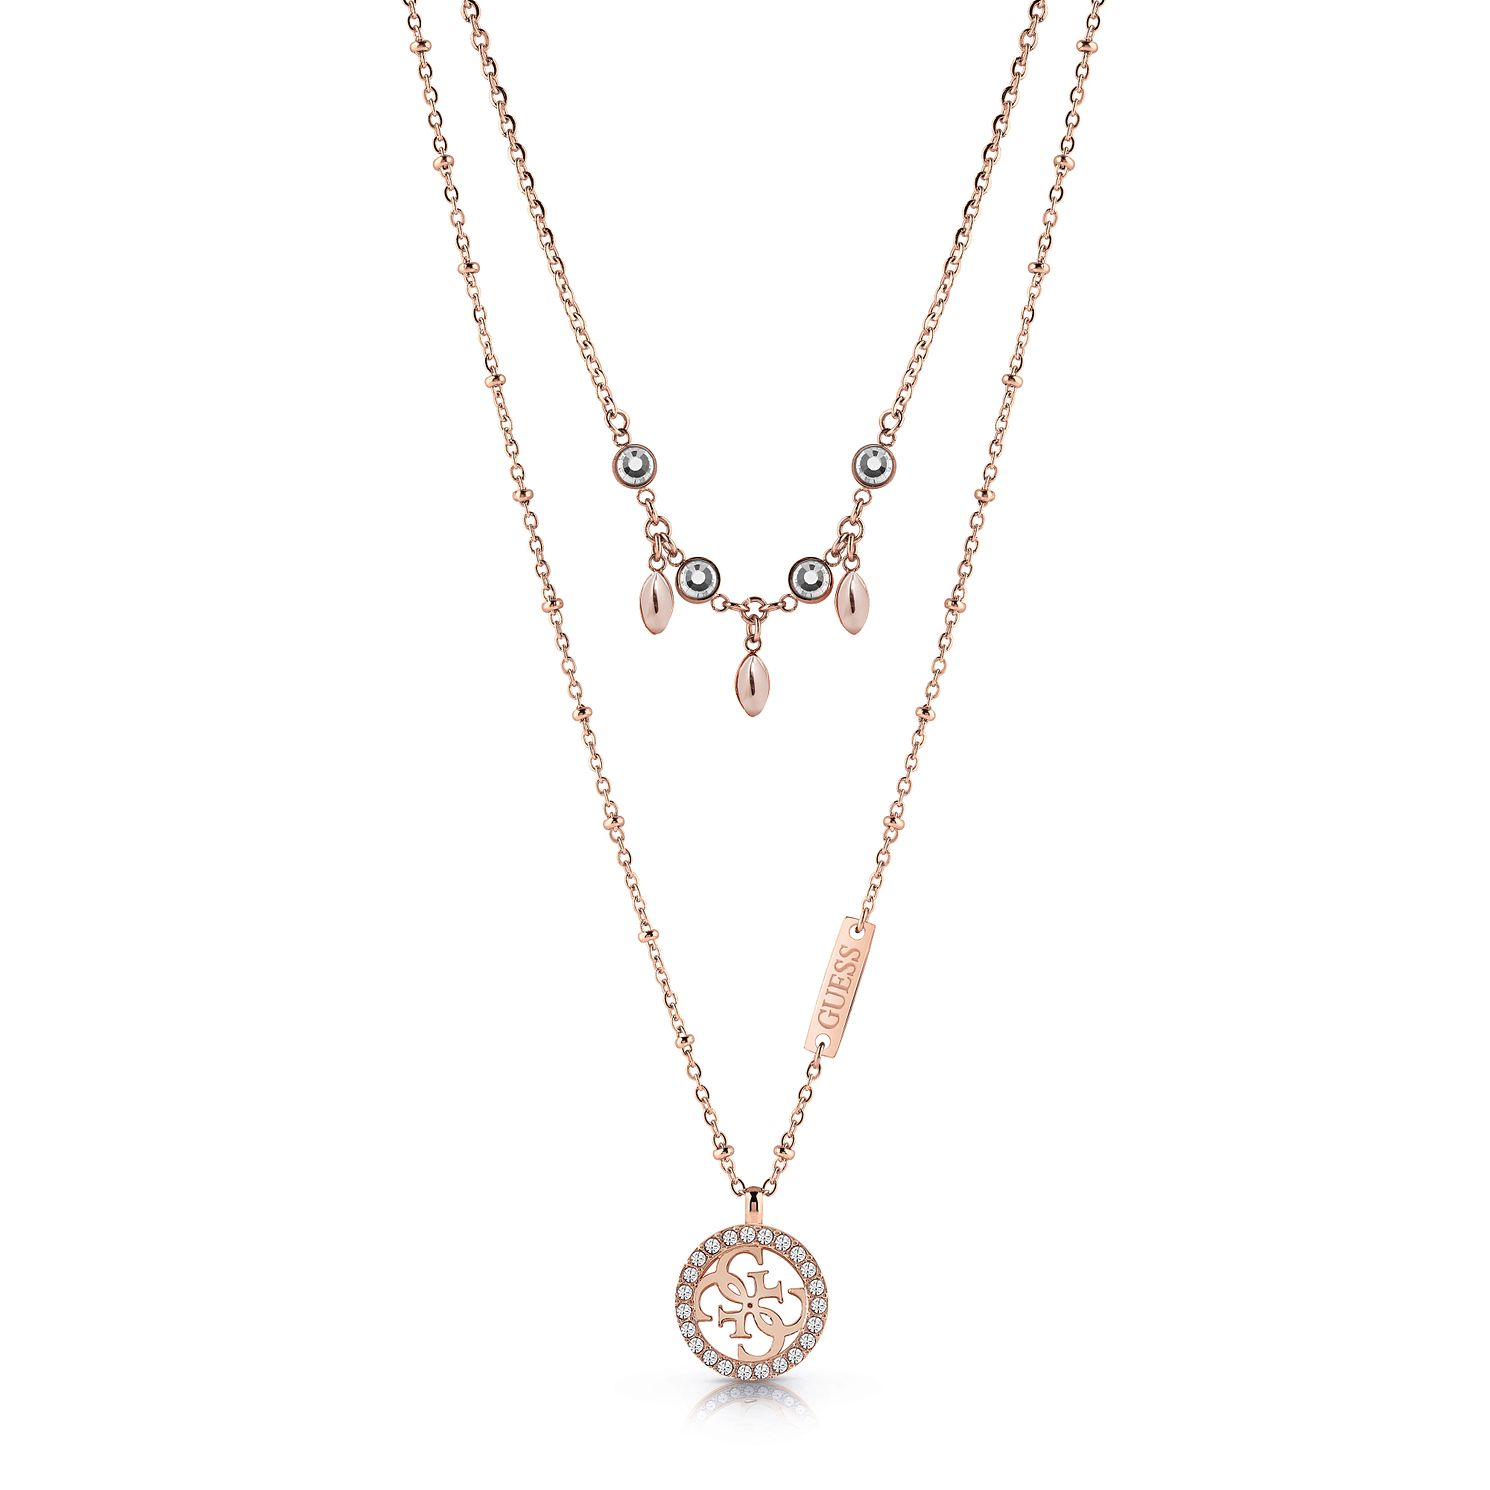 Guess Rose Gold Tone Swarovski Crystal Double 4-G Necklace - Product number 4105540